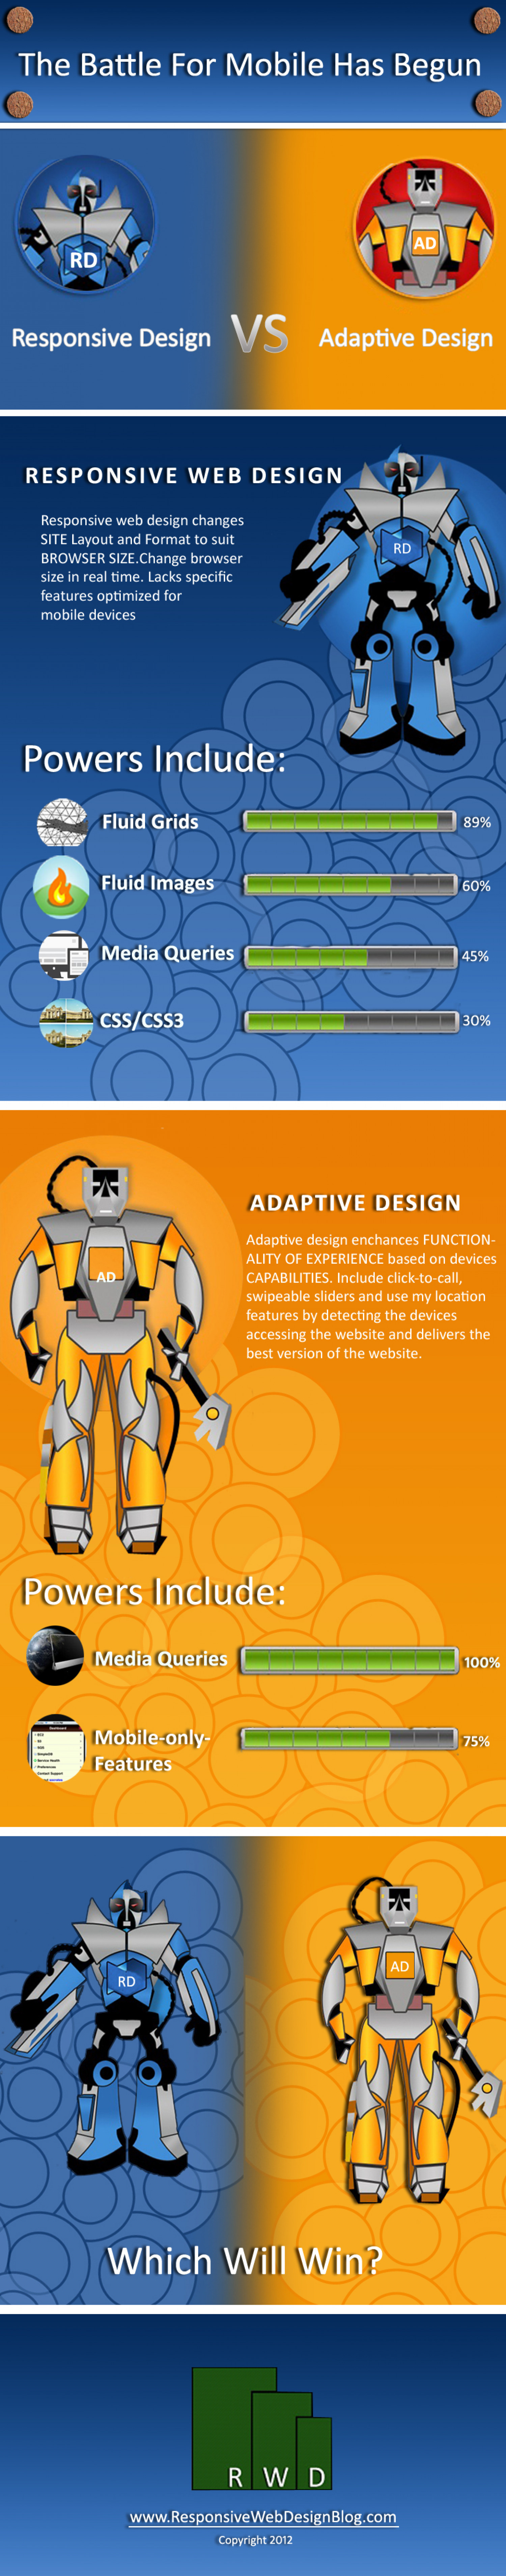 The Battle for Mobile Has Begun. Responsive Web Design vs. Adaptive Web Design Infographic